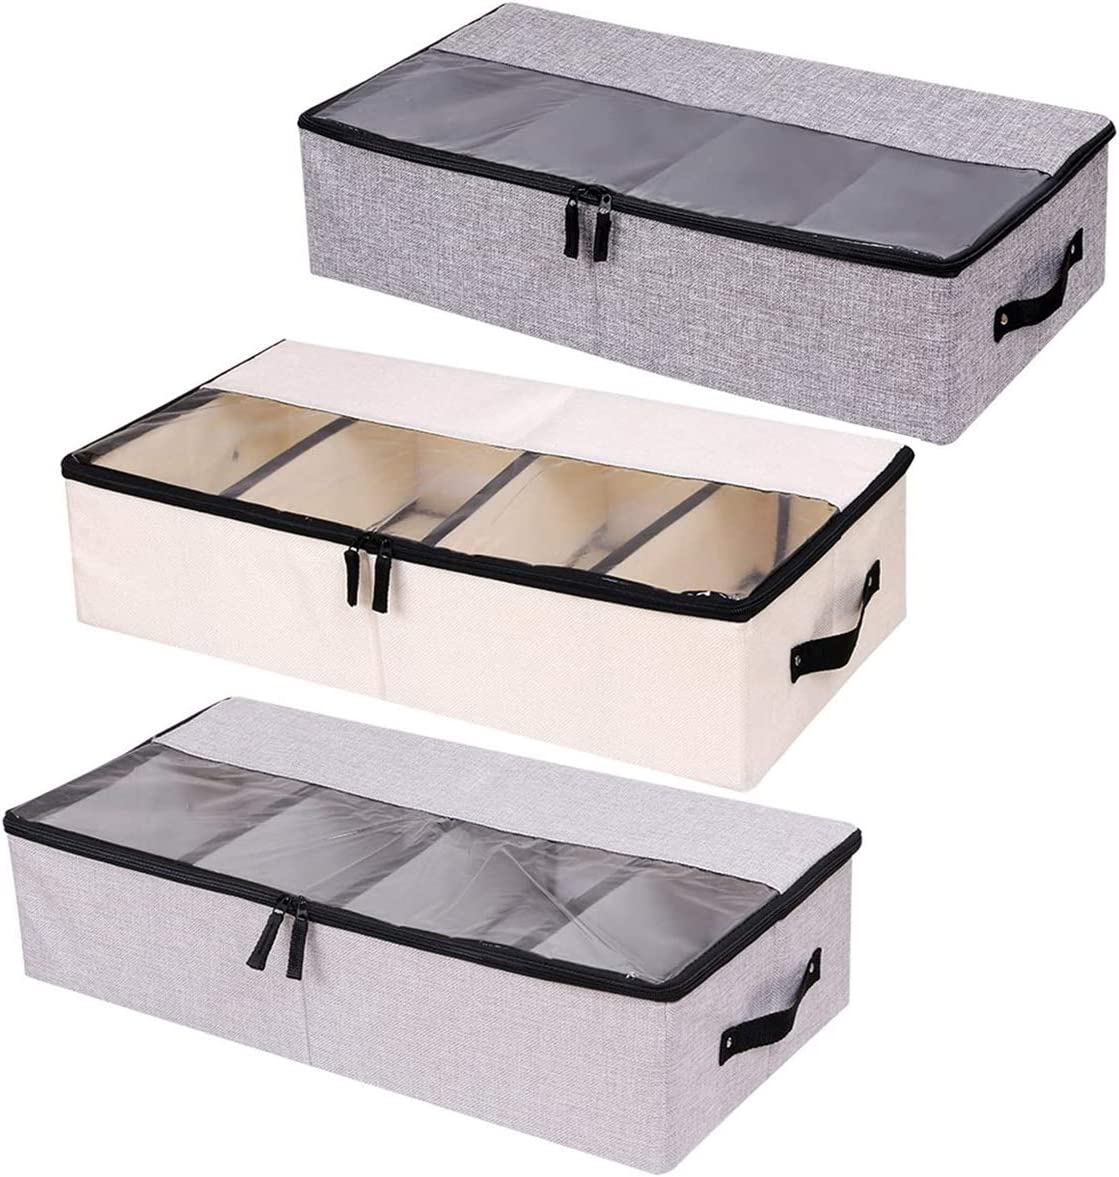 Max 45% OFF In kds San Francisco Mall Clothes Shoe Organizer Conta Multifunction Shoes Foldable